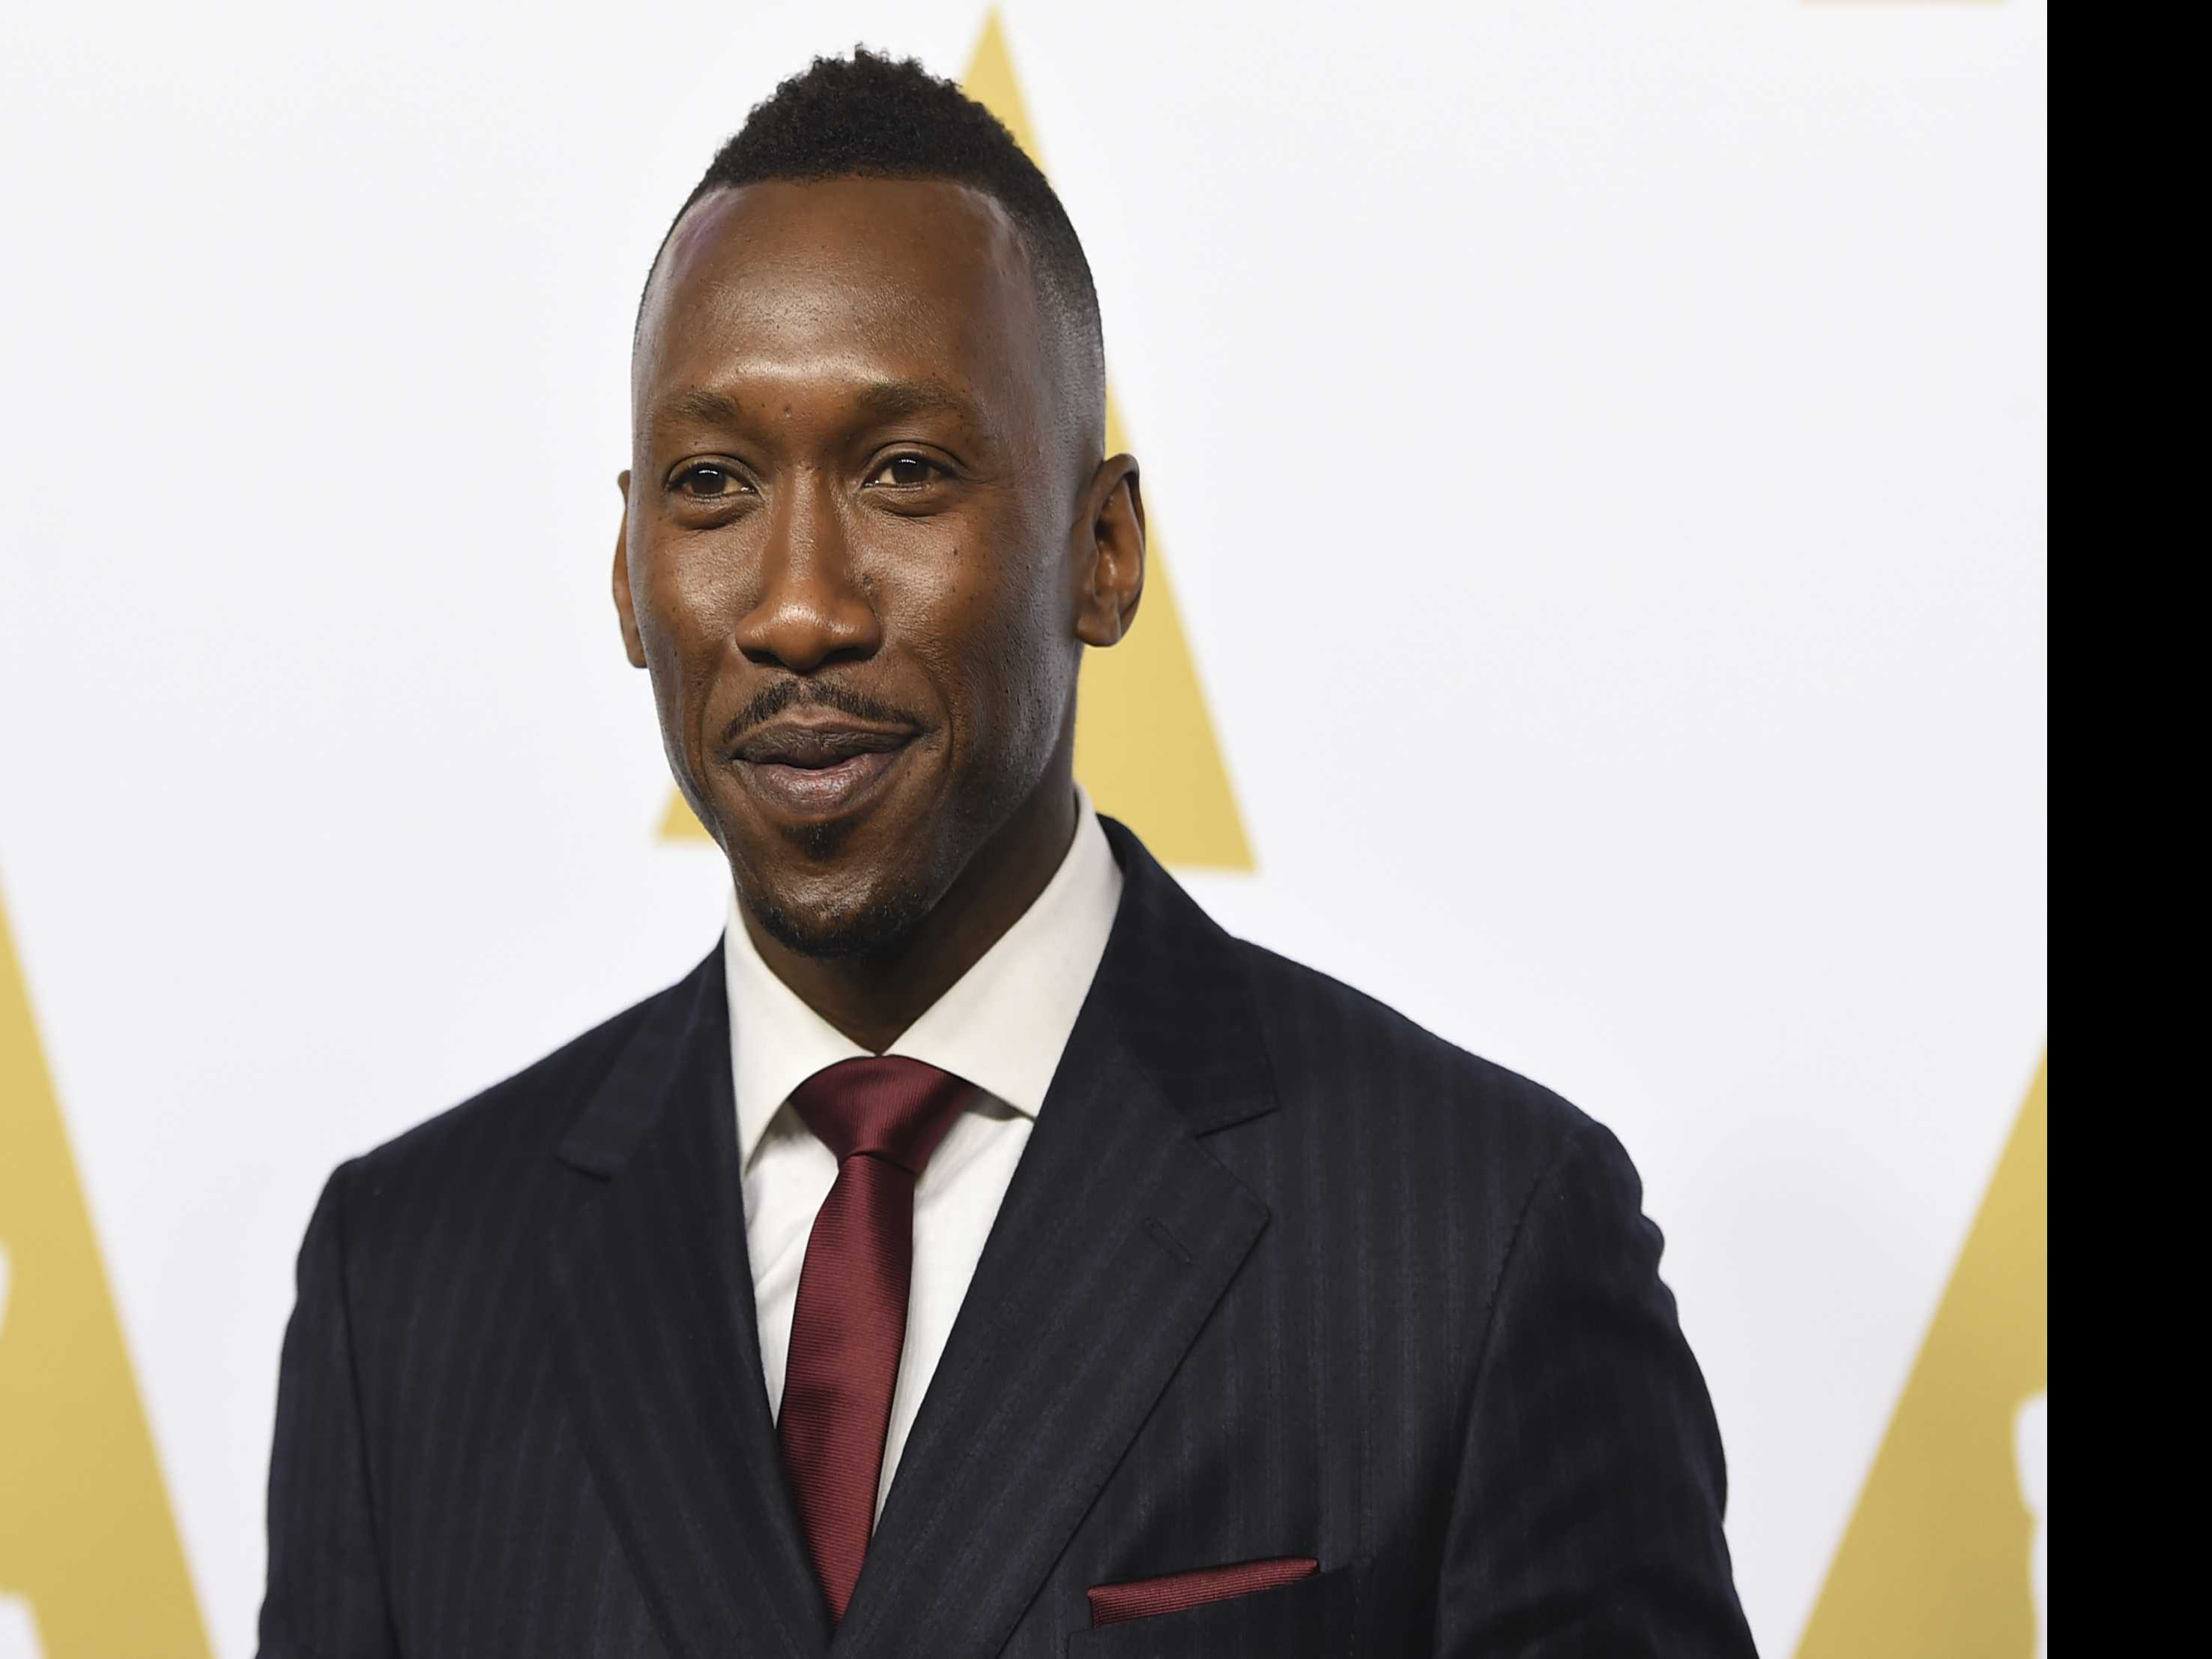 New Spotlight, New Baby For Oscars-Bound Mahershala Ali